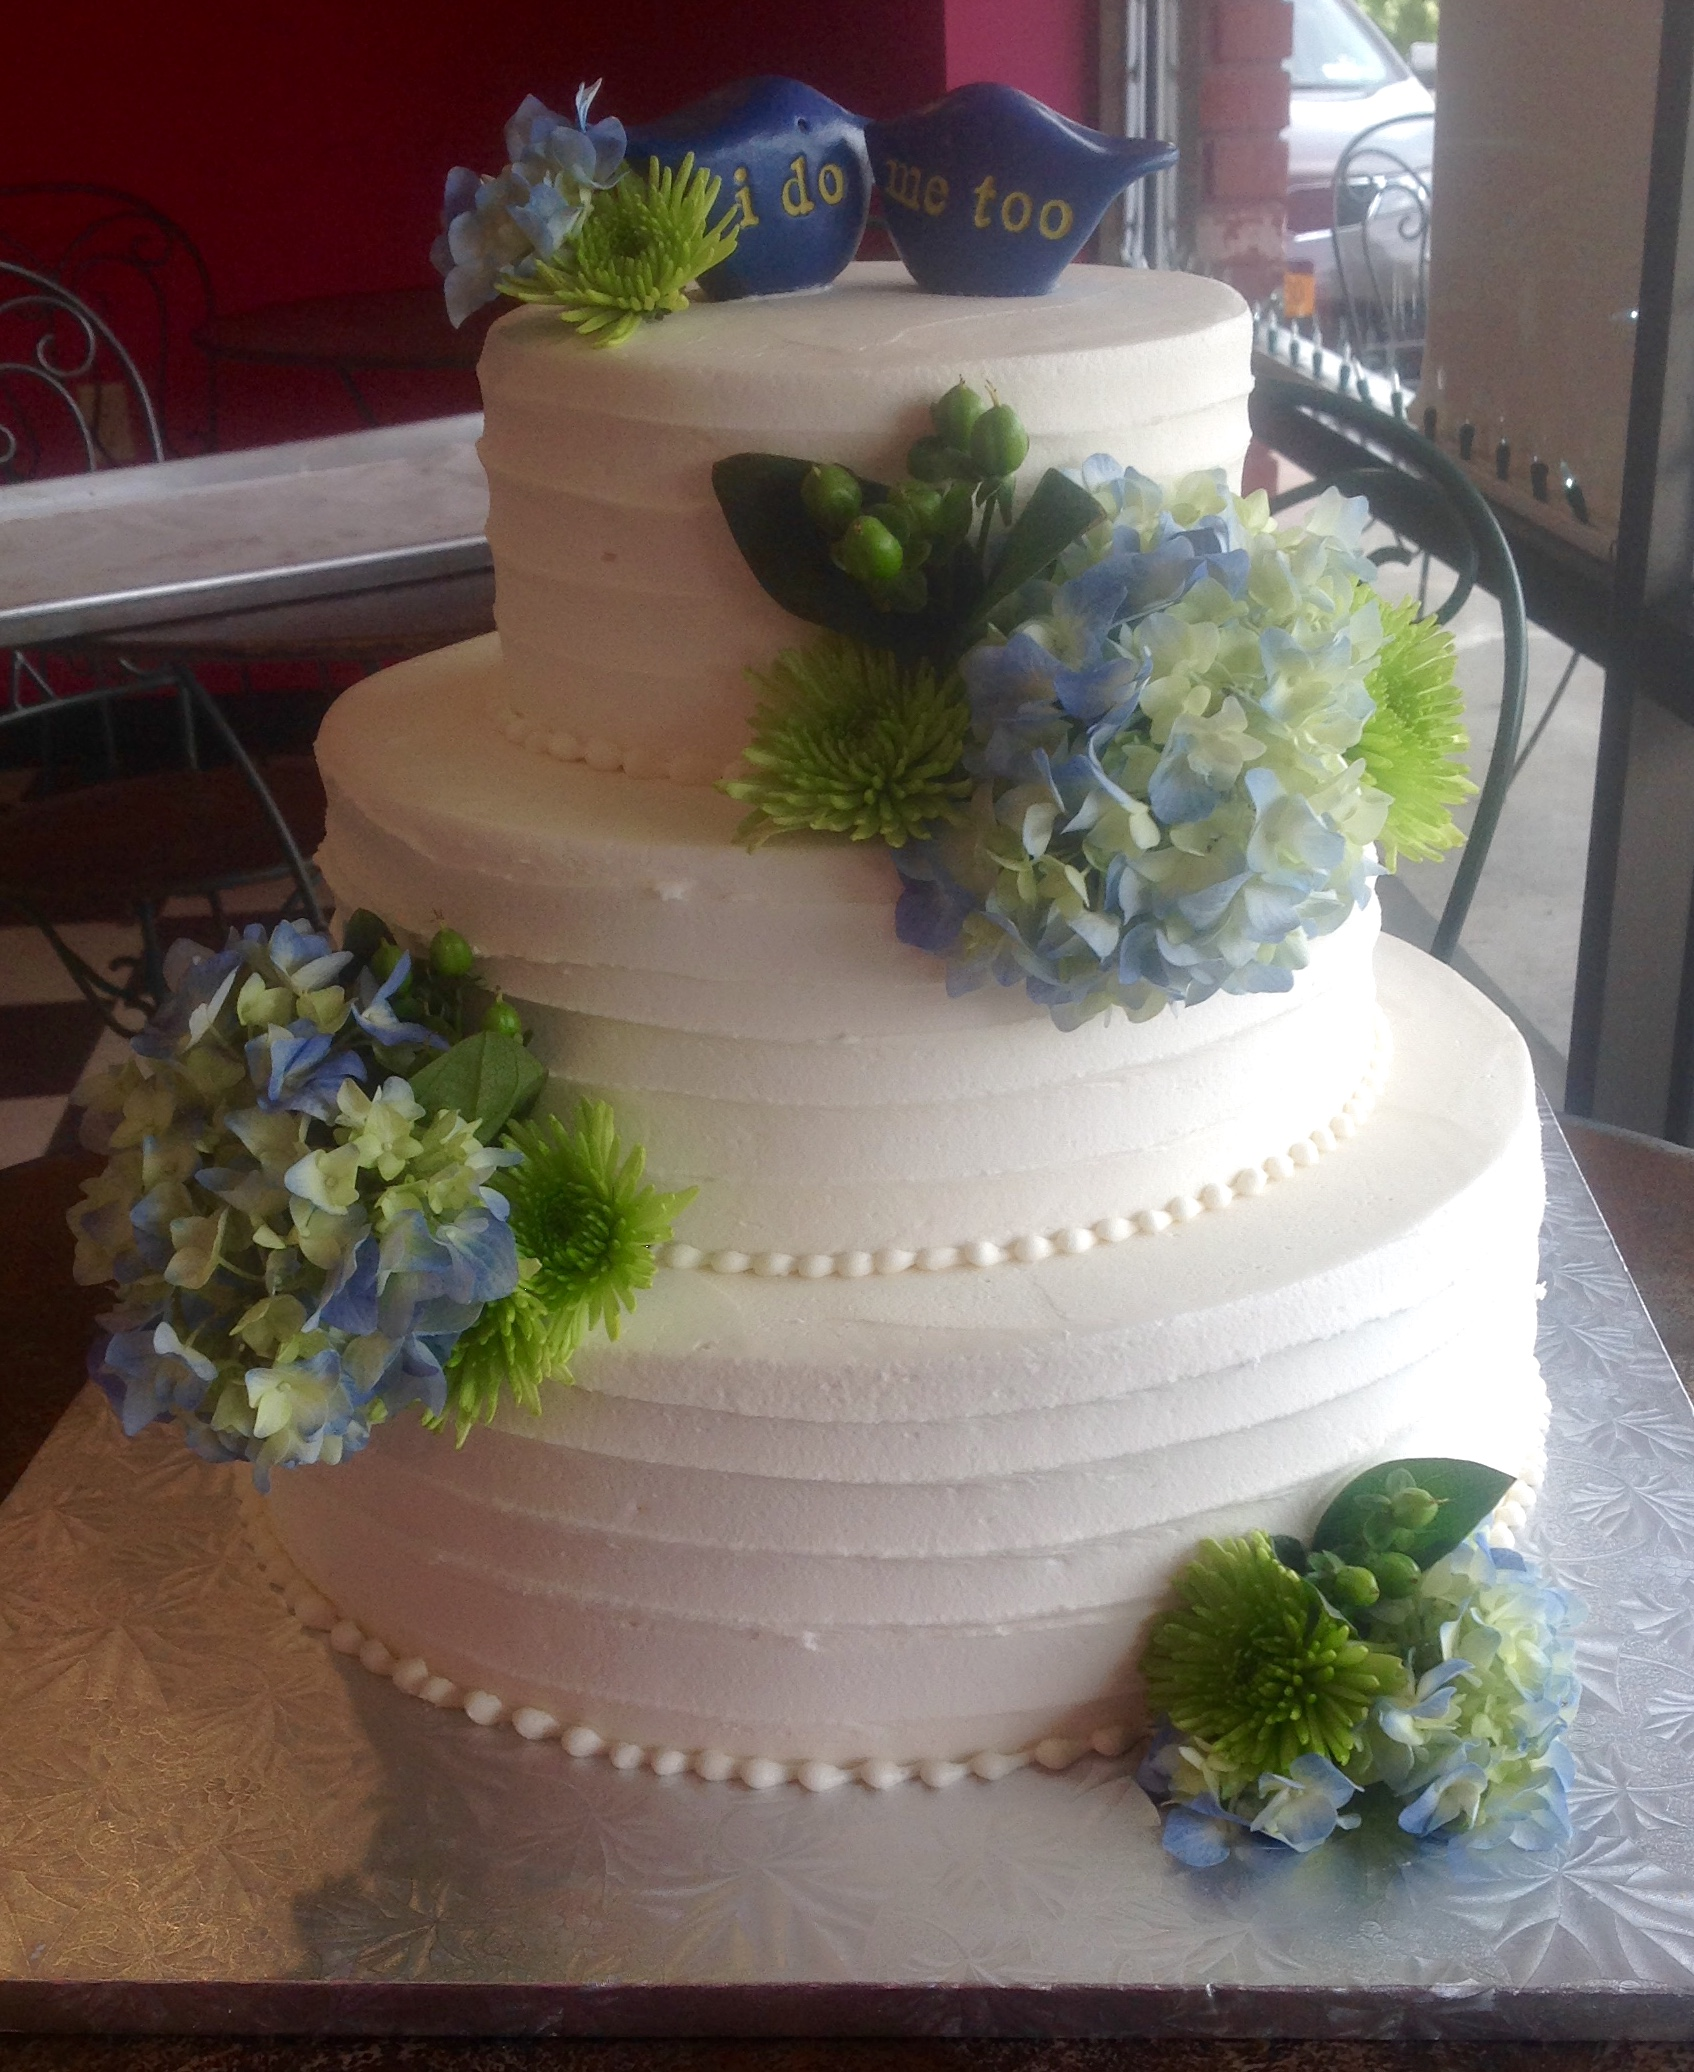 Gluten free wedding cakes and assorted cakes at Dolce and Biscotti Italian Bakery